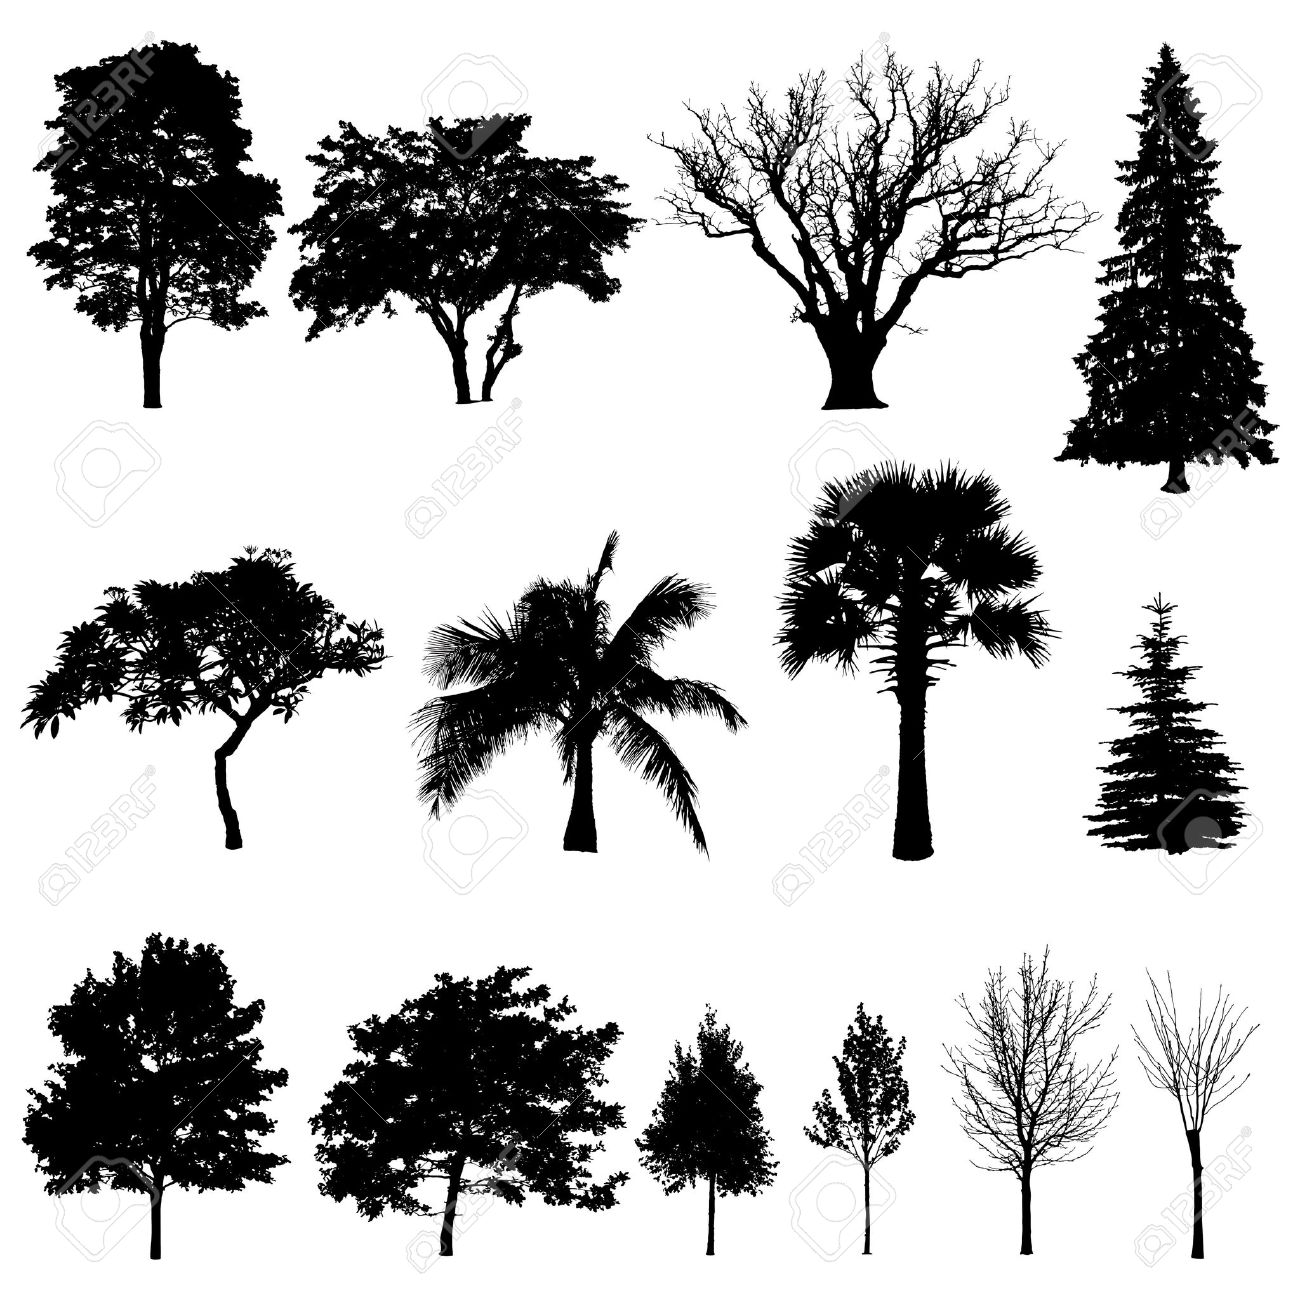 evergreen tree images u0026 stock pictures royalty free evergreen